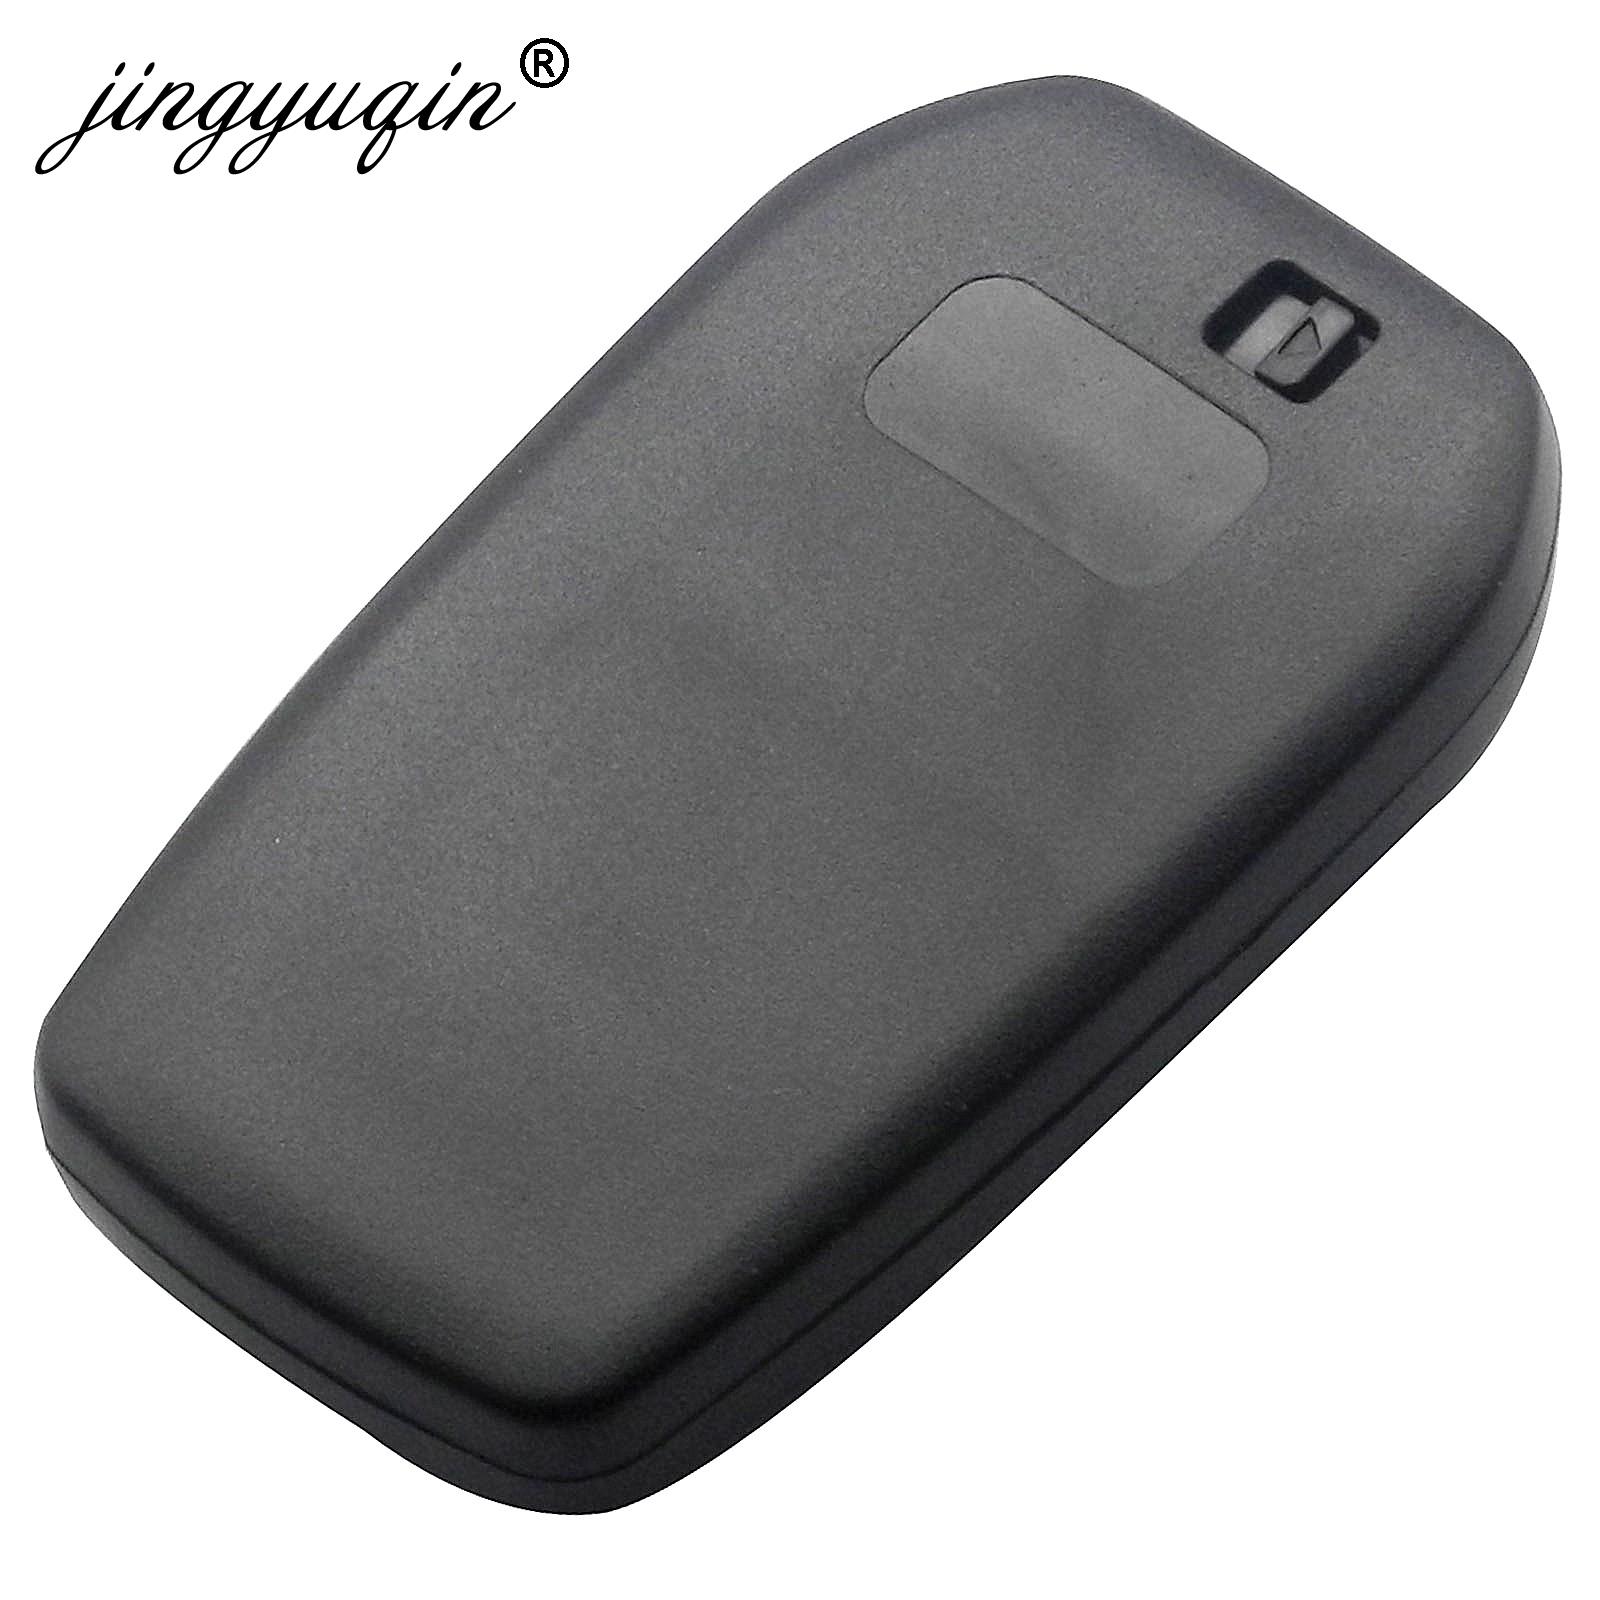 Image 3 - jinyuqin 2/3/4 Buttons Remote Key Fob Shell For Toyota Fortuner Prado Camry Rav4 Highlander Crown Smart Keyless Case Housing-in Car Key from Automobiles & Motorcycles